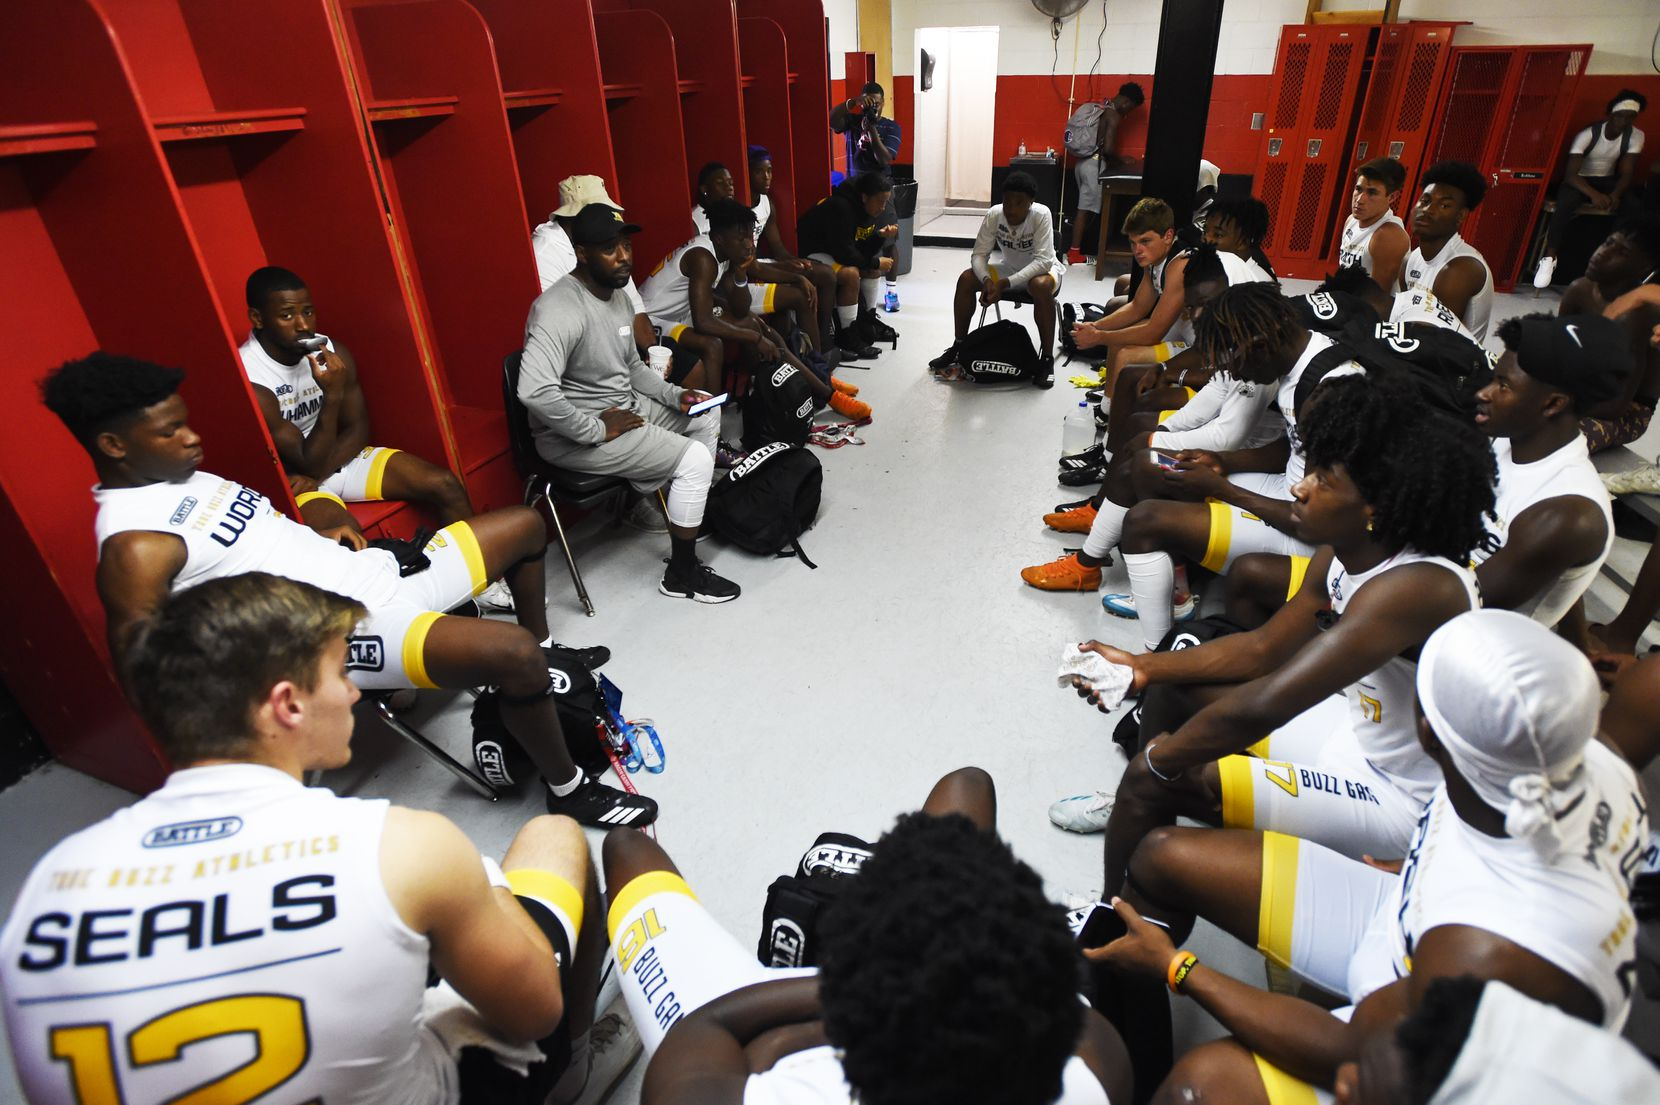 True Buzz coach Bryan Leonard gives a talk to his players in the locker room prior to the Pylon 7v7 National Championship event held at Woodward Academy in Atlanta, Georgia, on May 26, 2019.  ORG XMIT: 10045505A